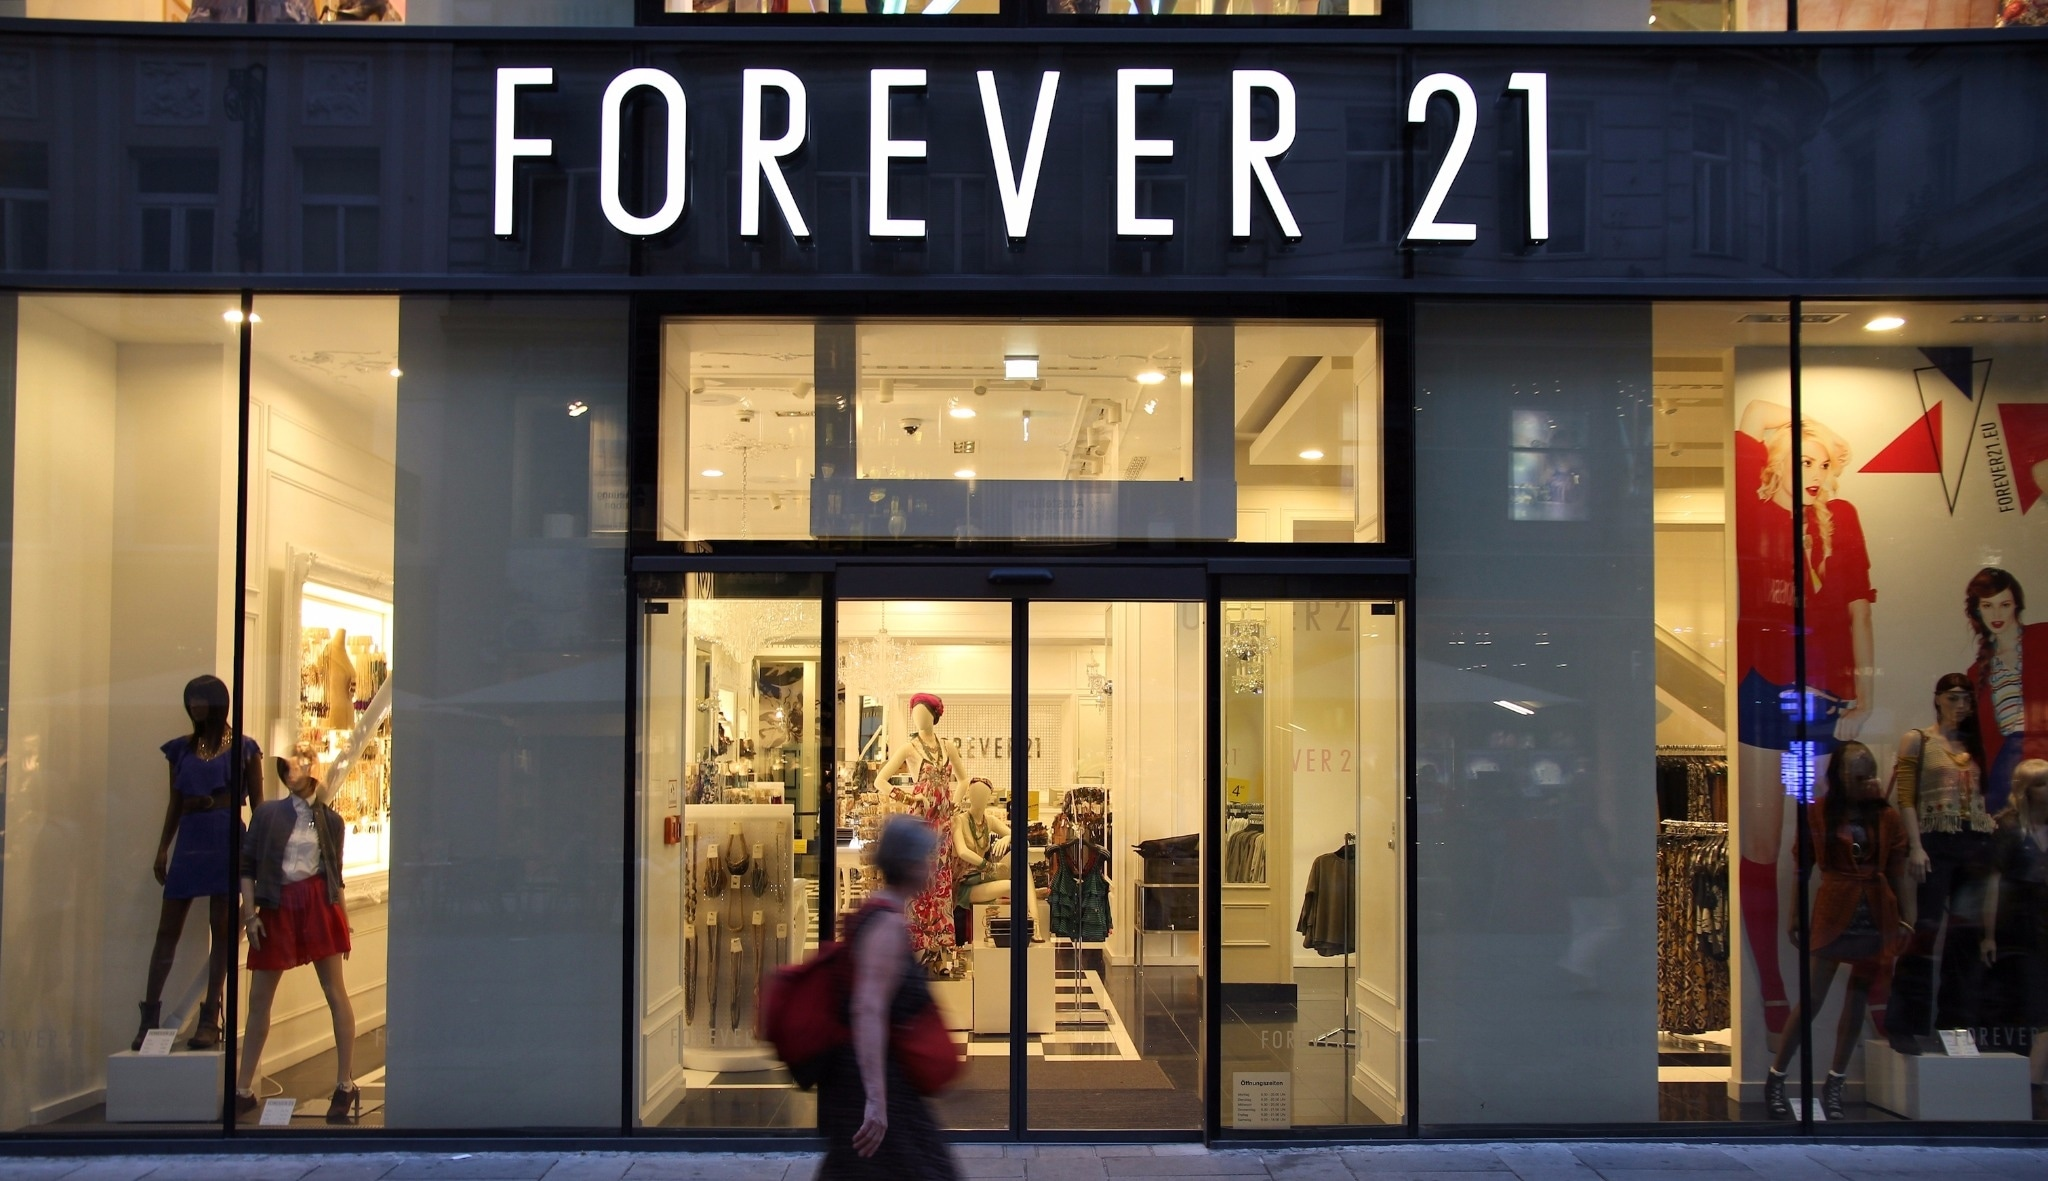 Top 10 Ways to Save Money at Forever 21 [INFOGRAPHIC]